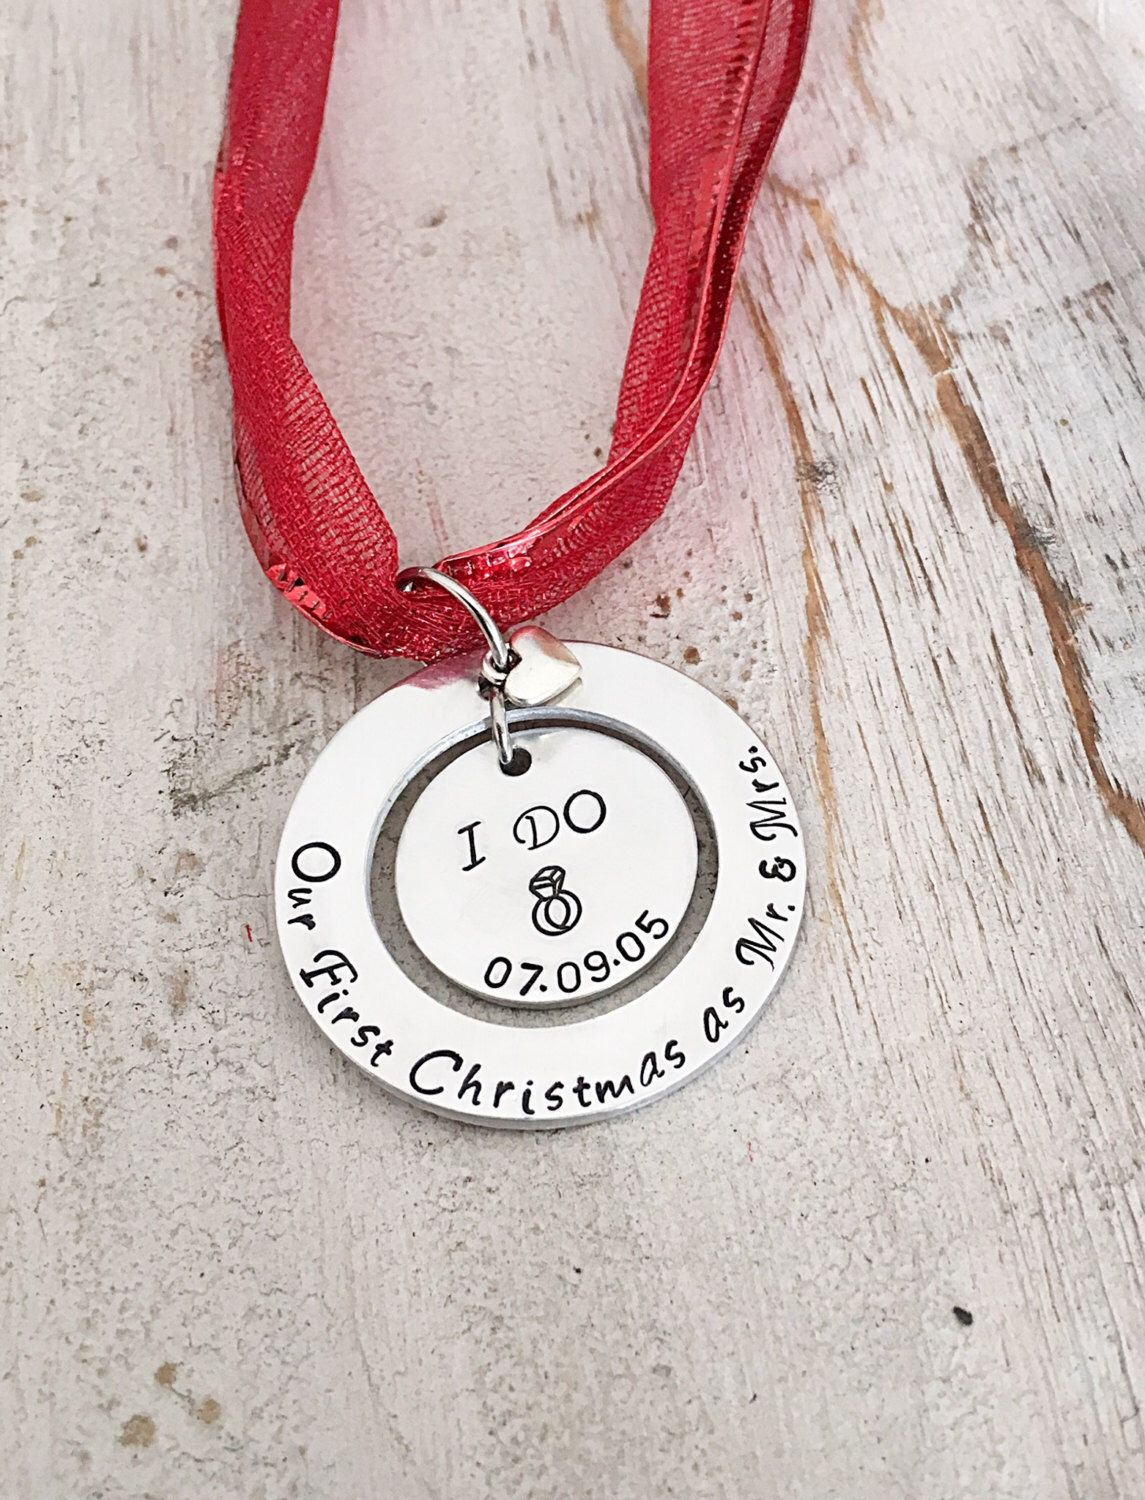 This custom ornaments outer ring is hand stamped with